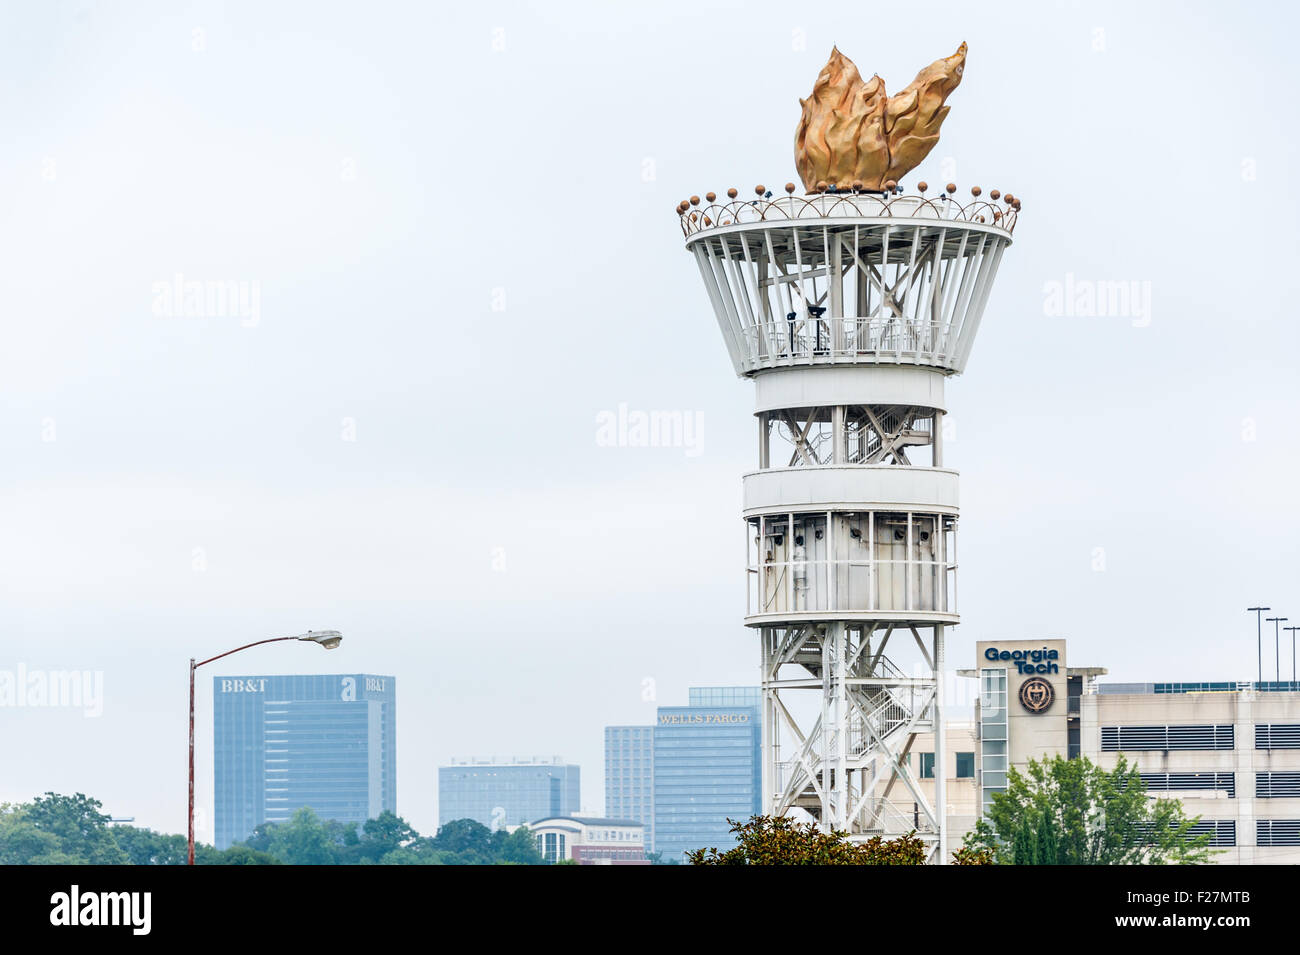 The Olympic torch tower from the 1996 Summer Olympics stands tall over Interstates 75 and 85 in the heart of Midtown - Stock Image